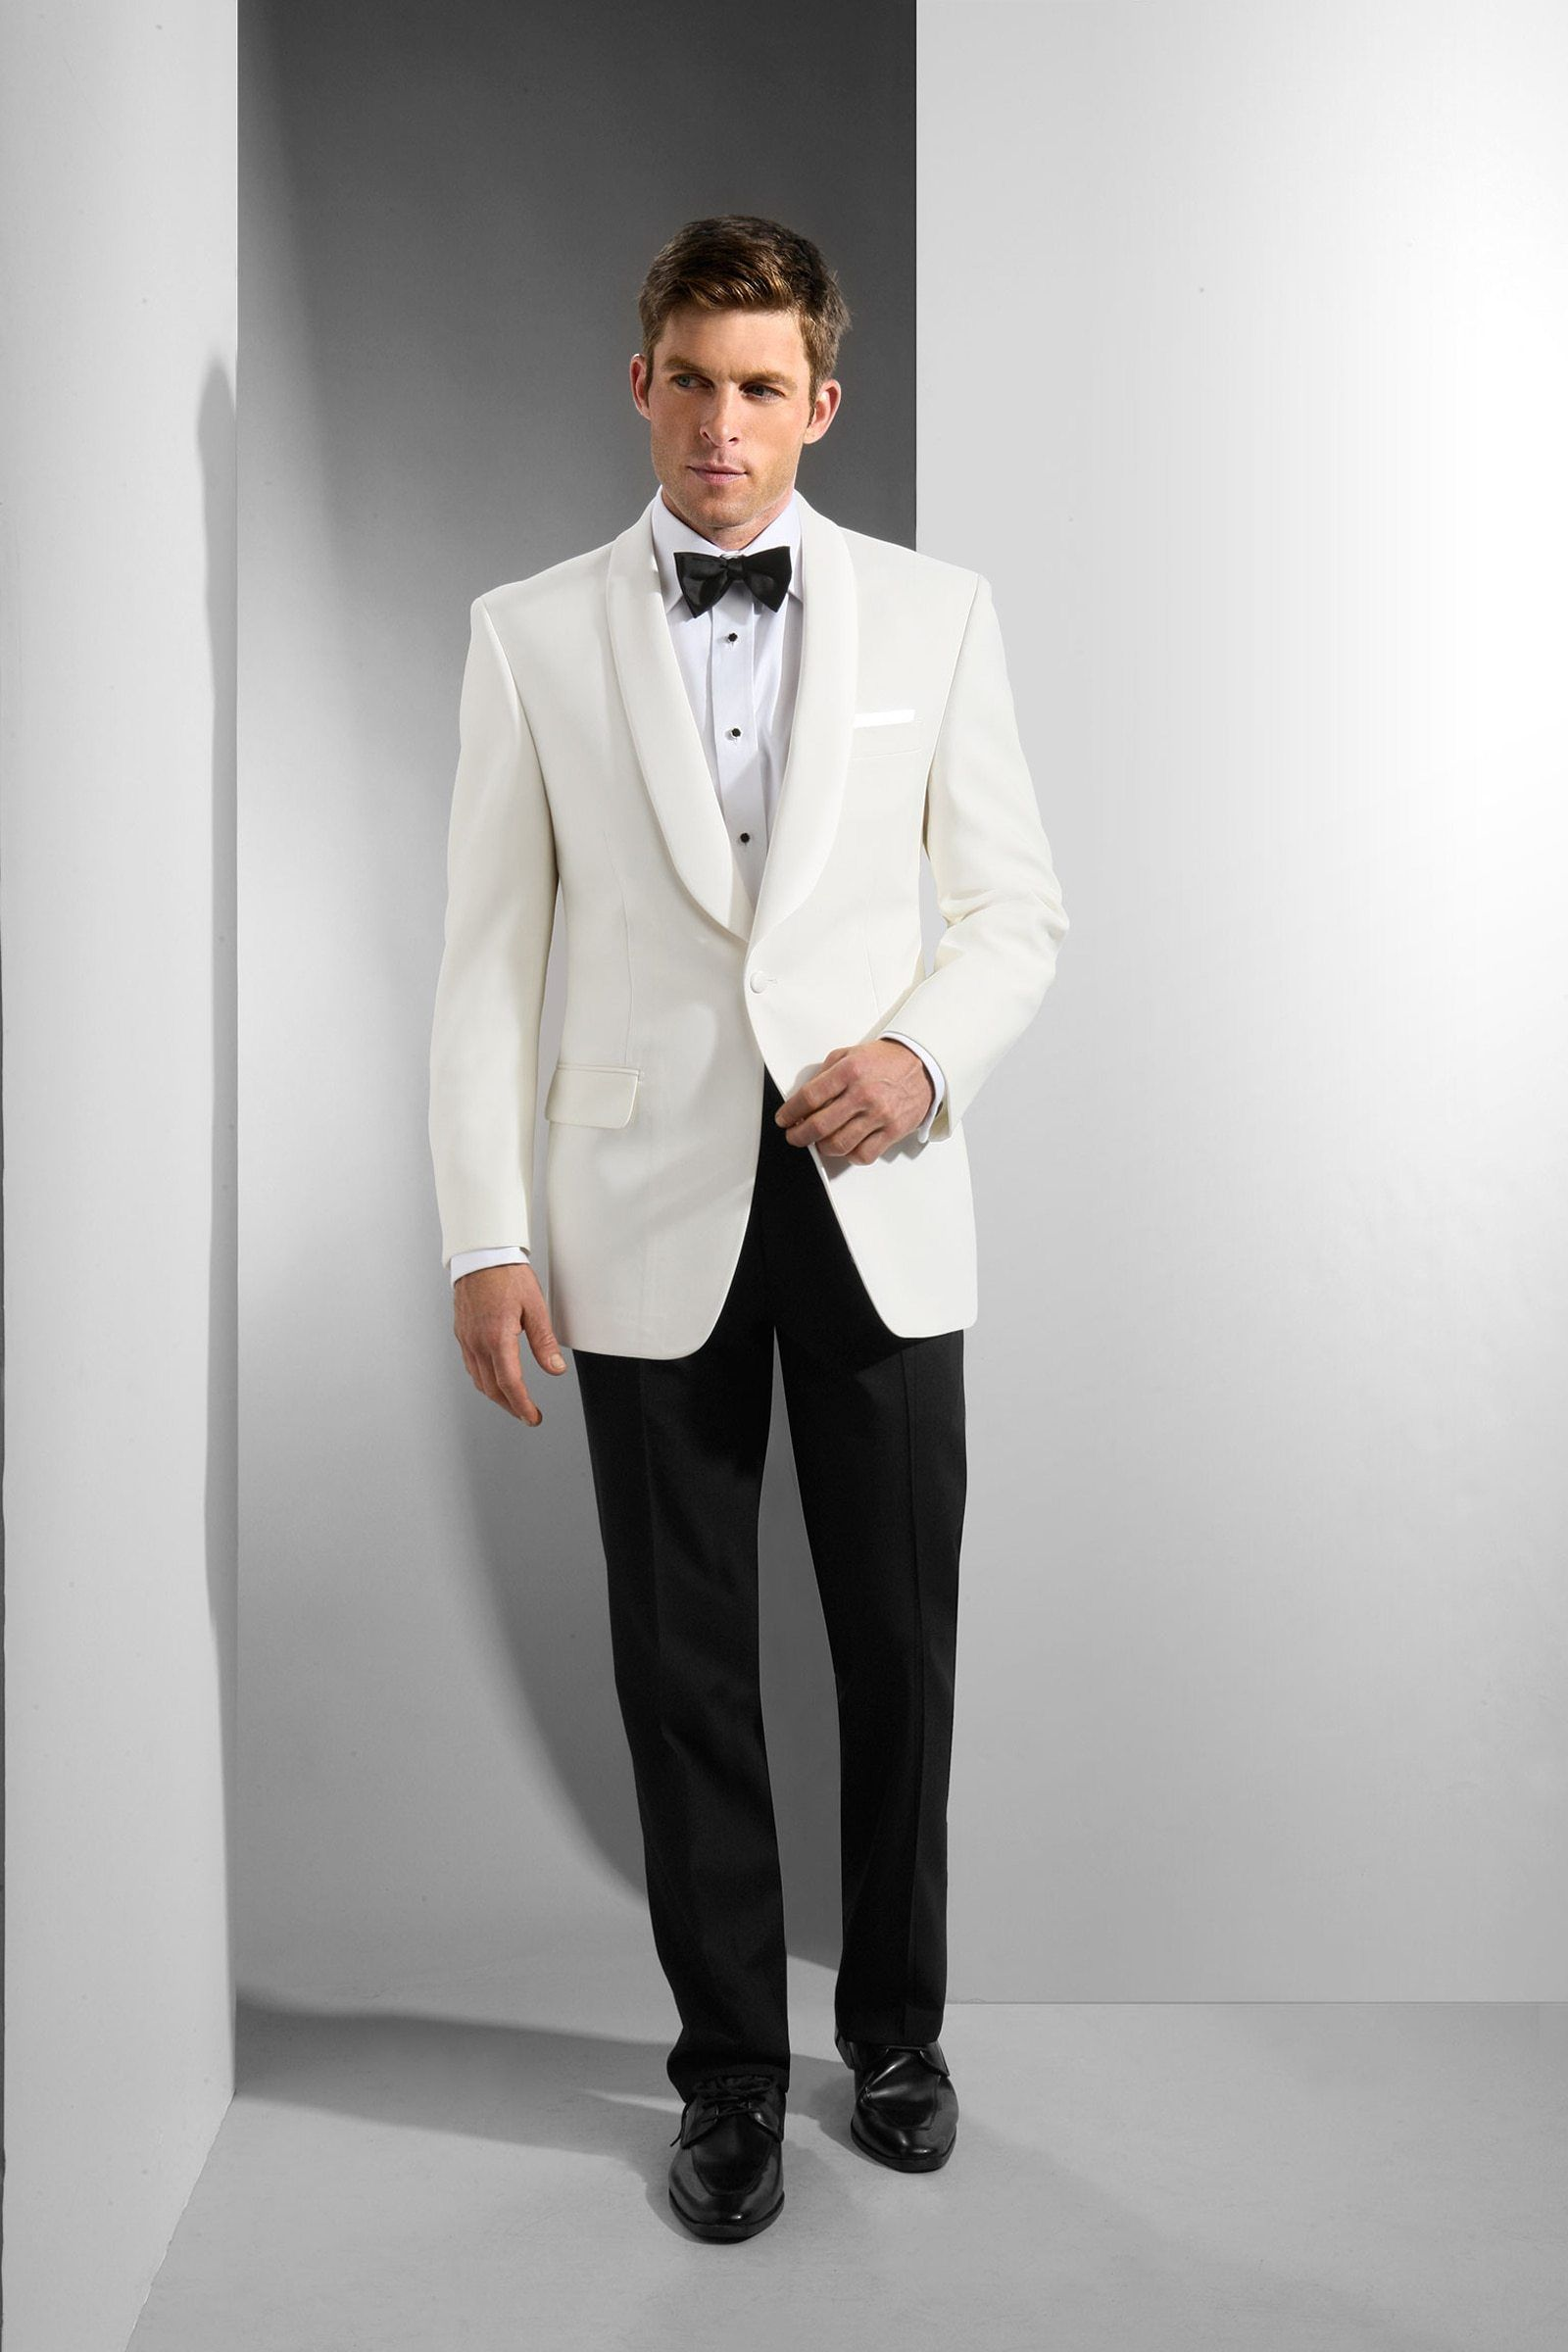 af9c5581c363 Wedding Attire for Men: The Complete Guide for 2019 | Wedding ideas ...